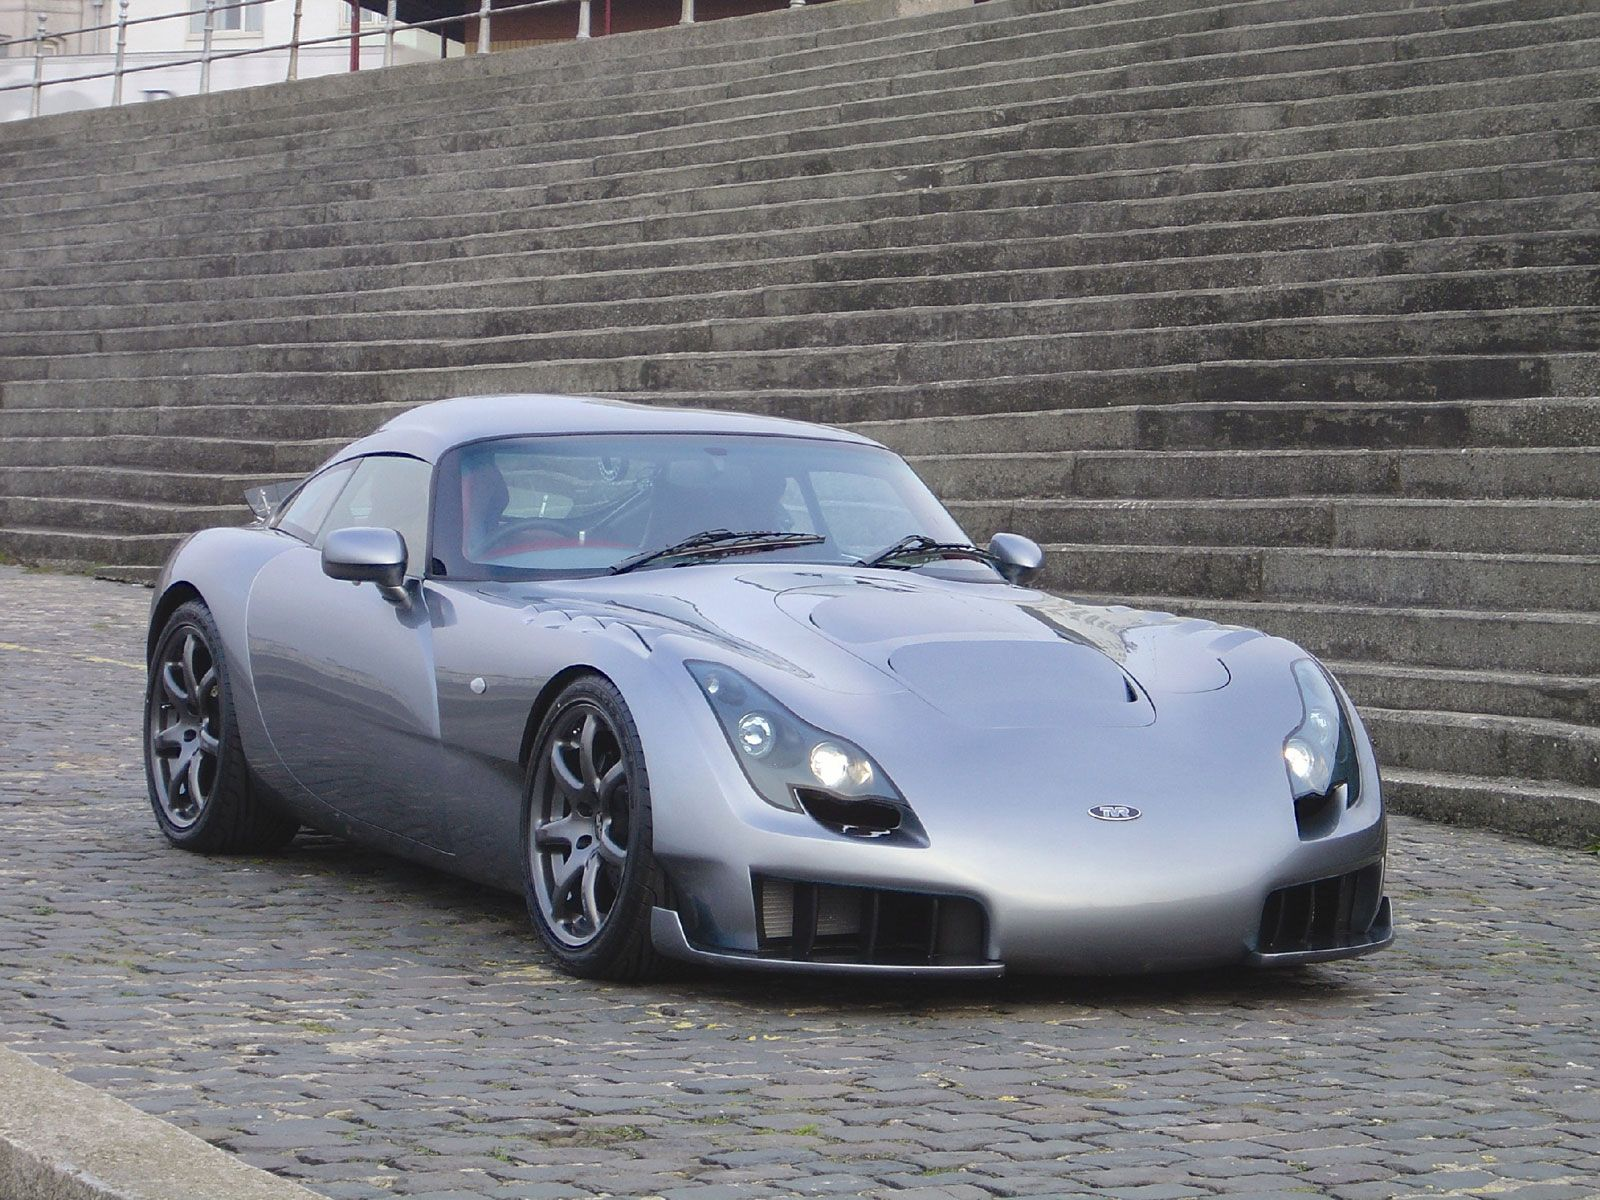 fe27e4e25761ca34806a814139fa2aec Fascinating Tvr Griffith for Sale In Uk Cars Trend